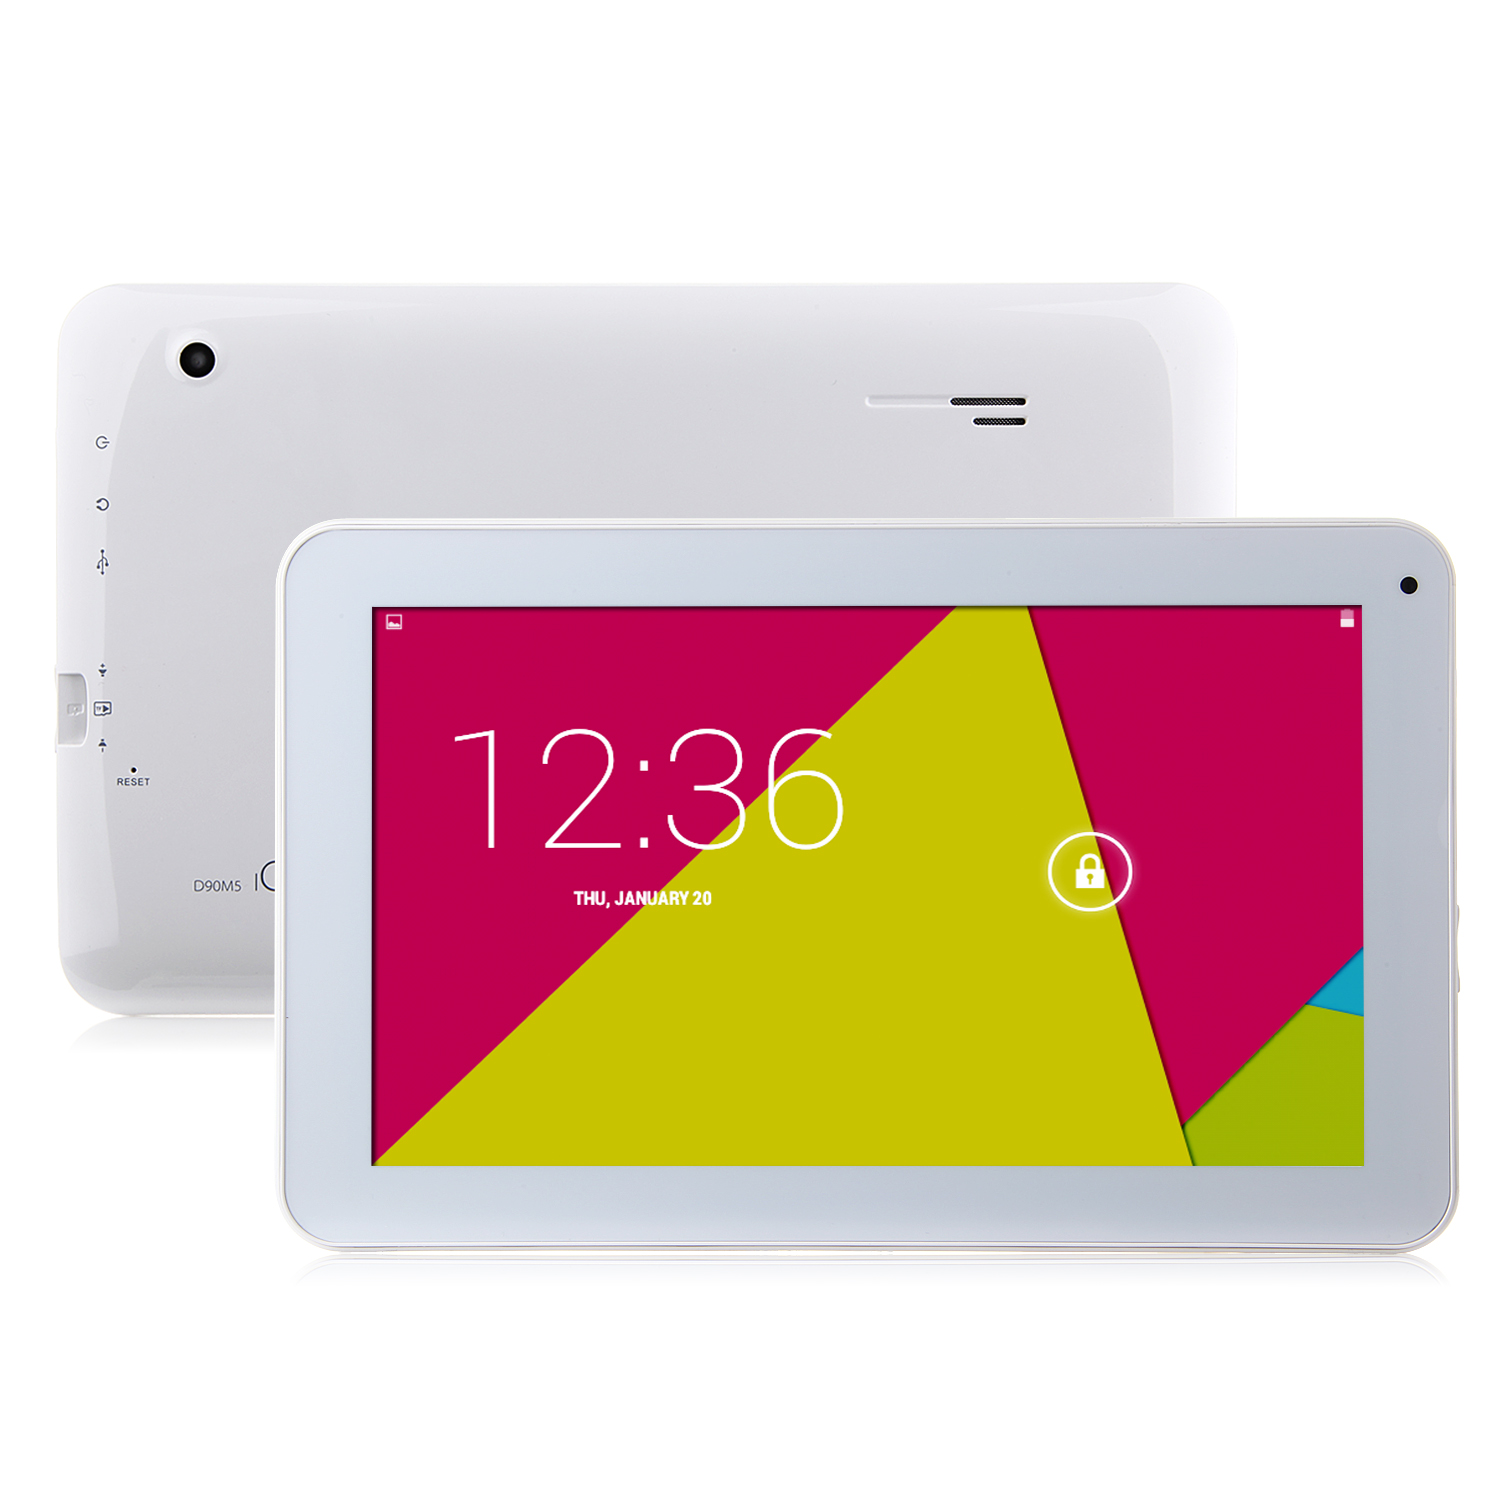 IC00 D90M5 Tablet PC RK3126 Quad Core 9.0 Inch Android 4.4 8GB White